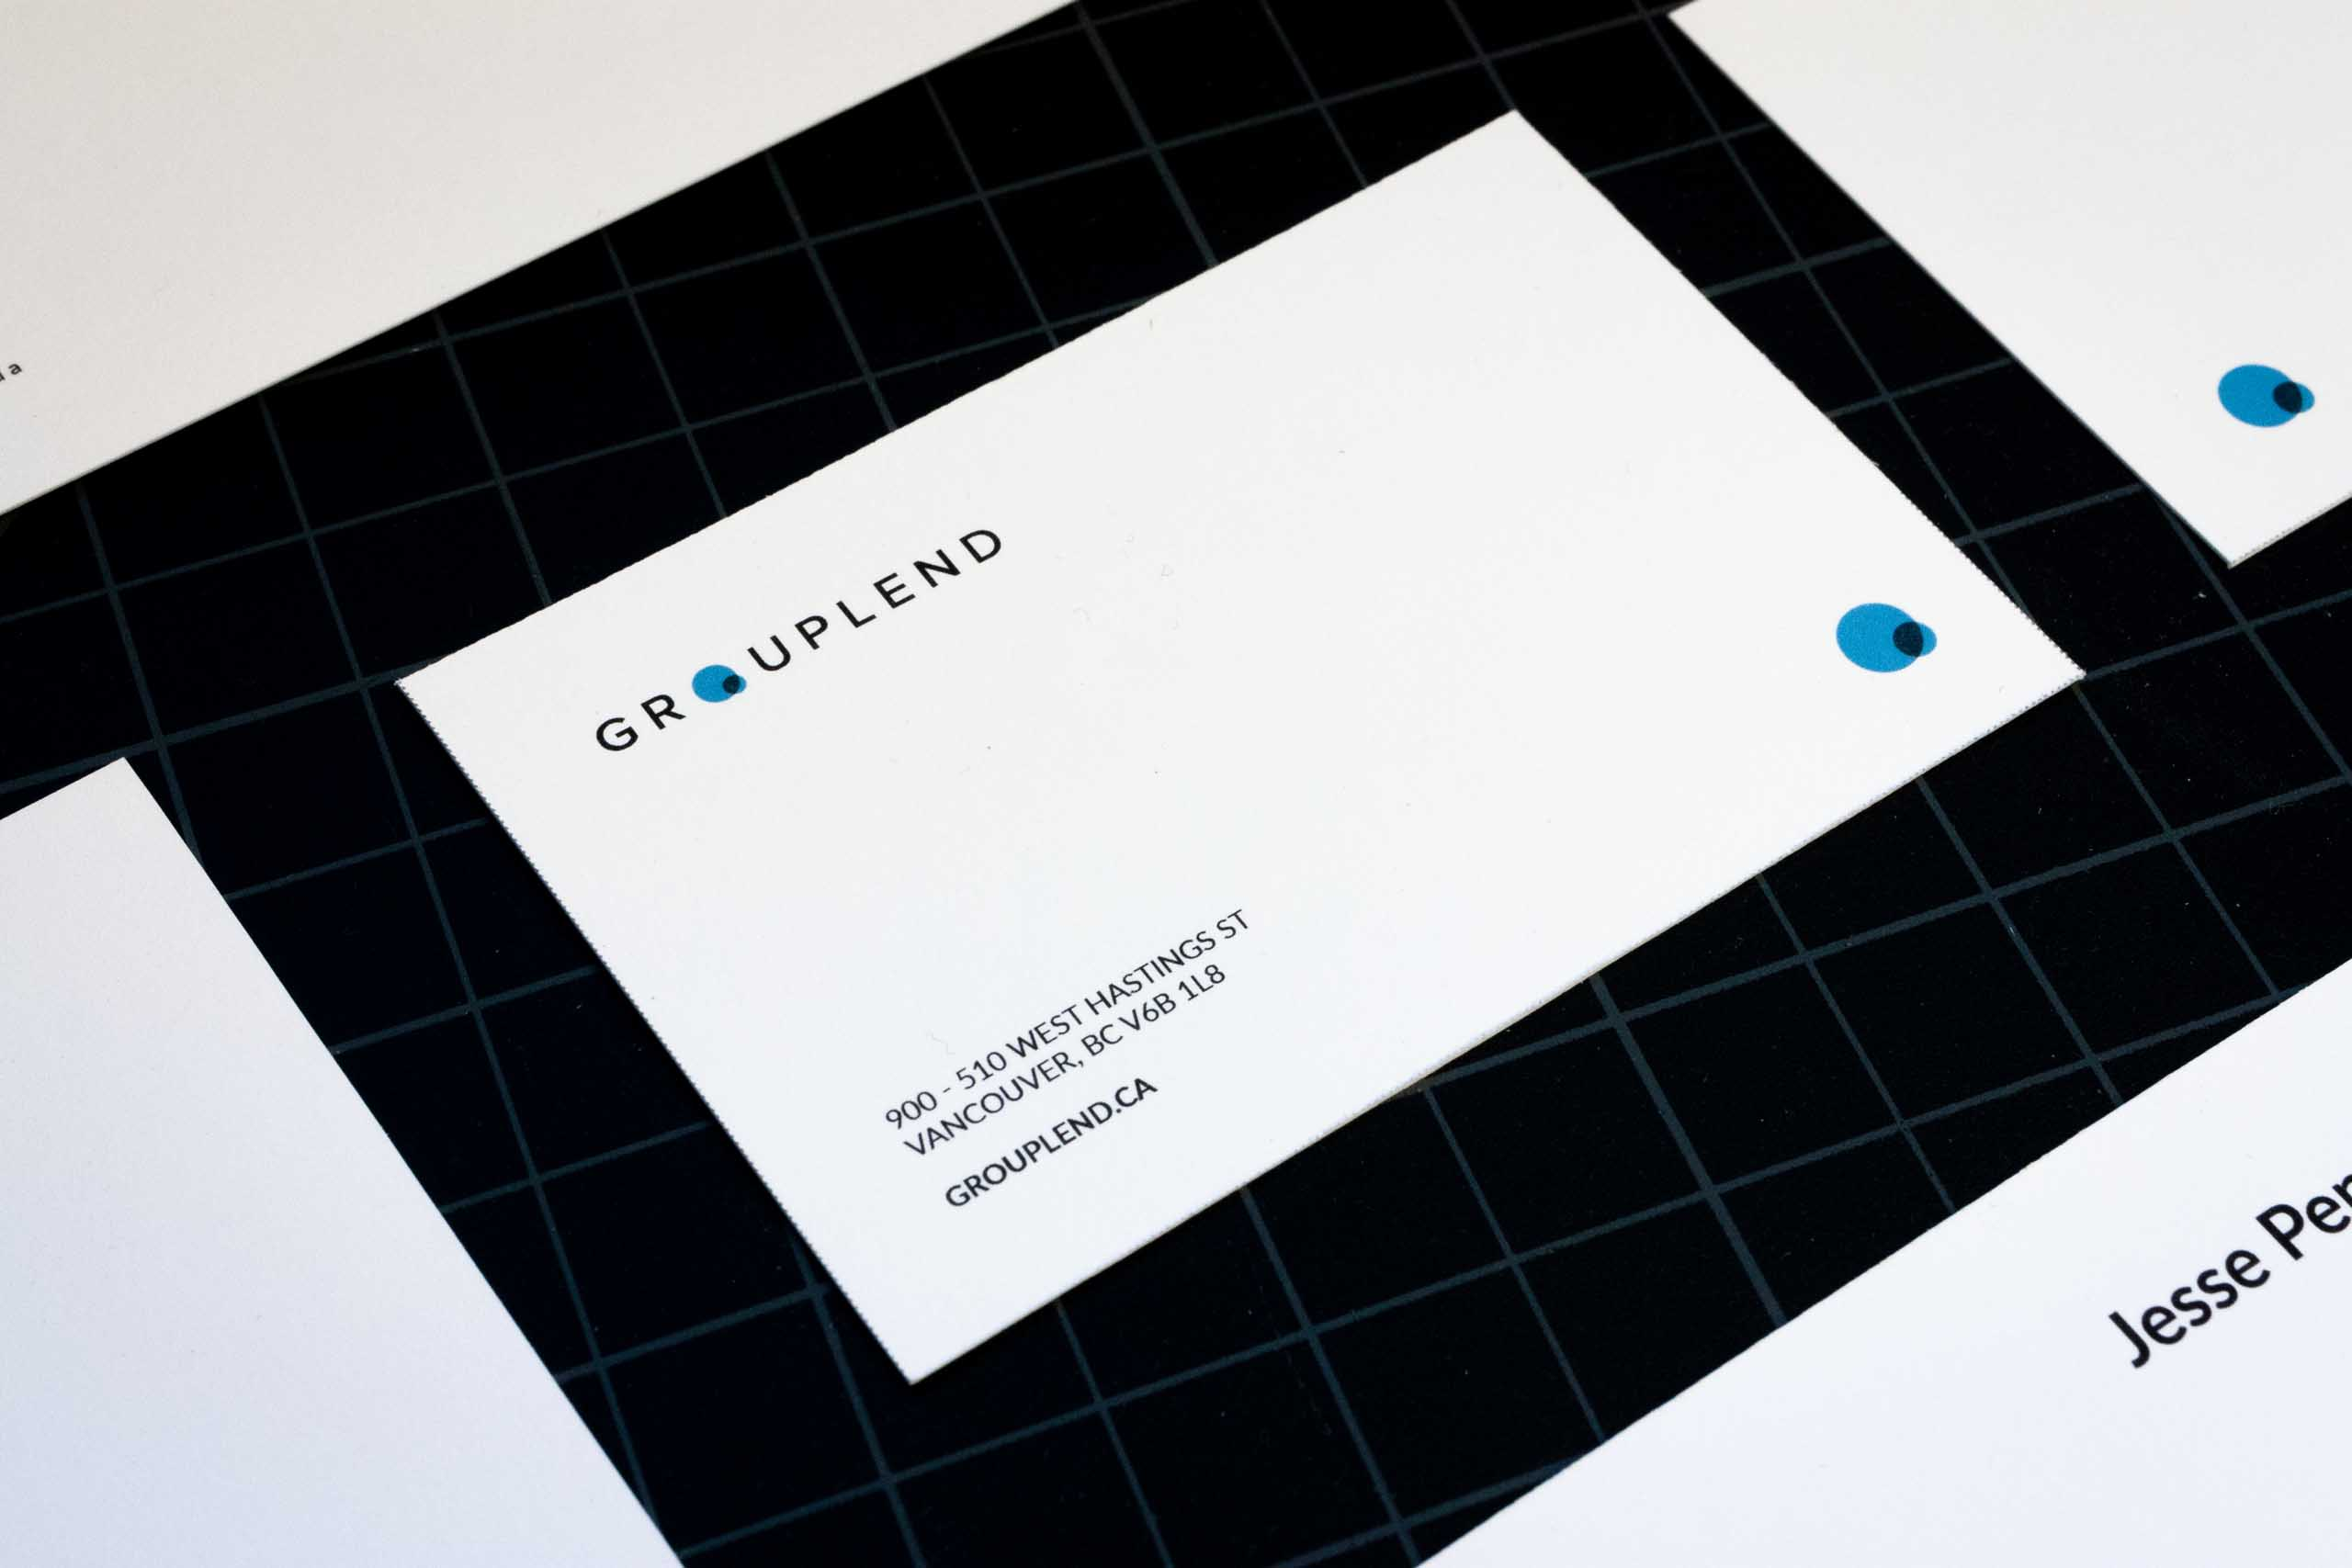 Close up of the Grouplend Business card informational side featuring company address, website and logo — by Yagnyuk.